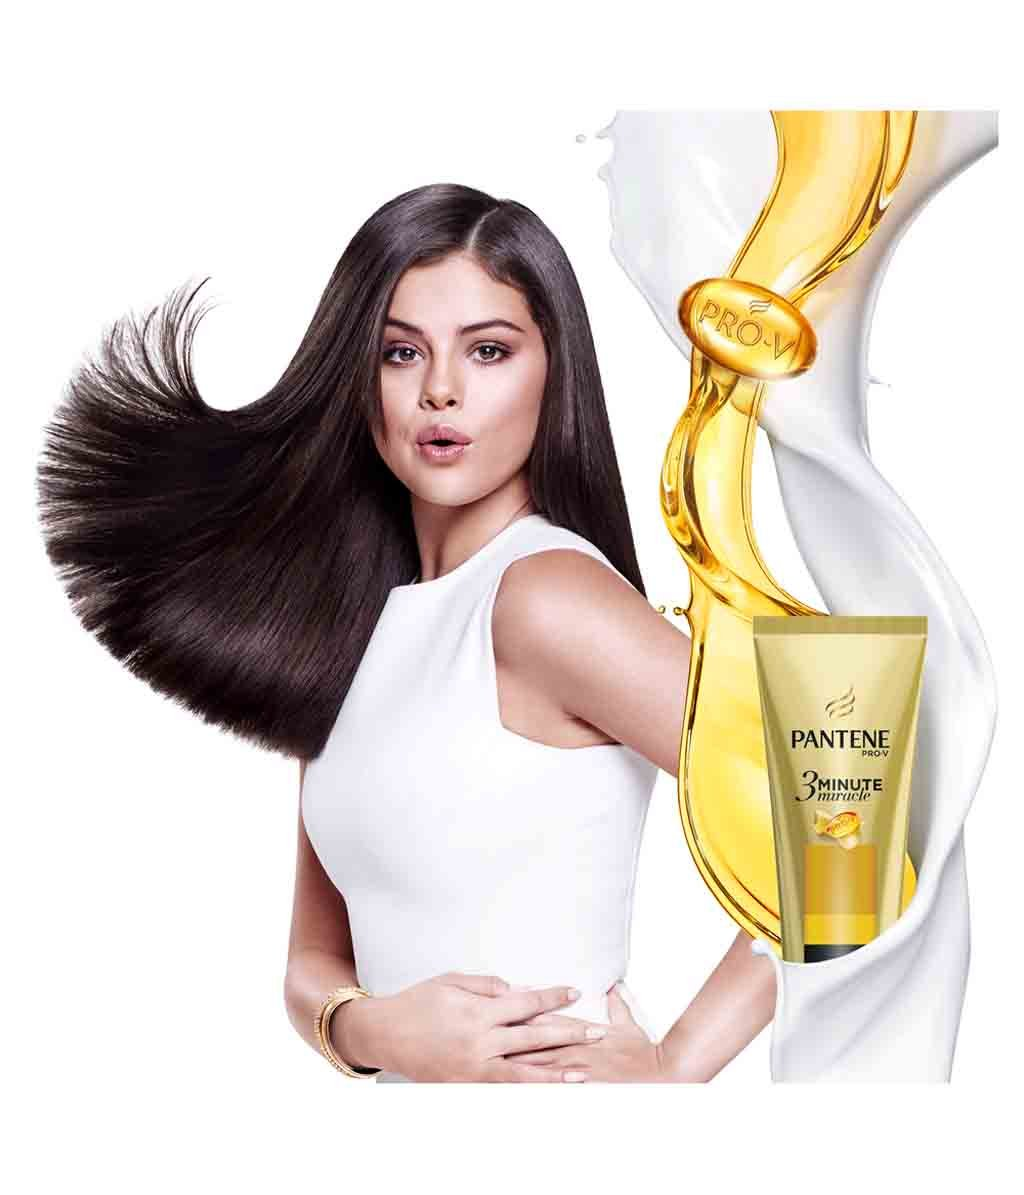 Pantene Pro V Repair And Care Test